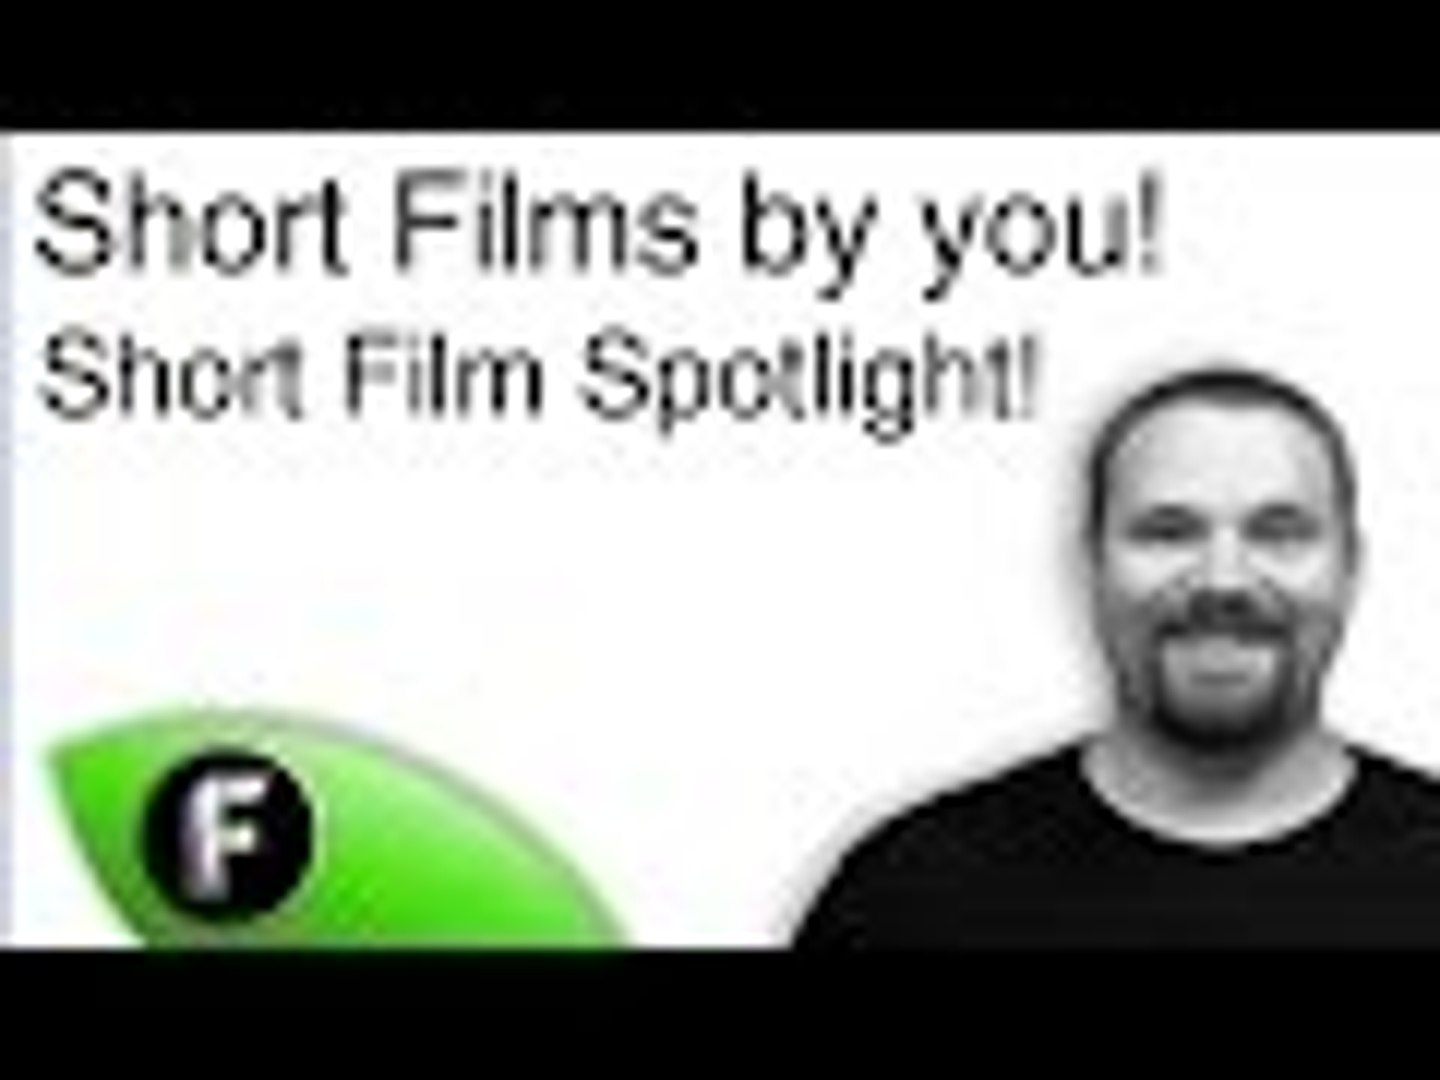 Villainy! - A short film by AlwaysFilming ► Do you like it?  - The Anthony Show